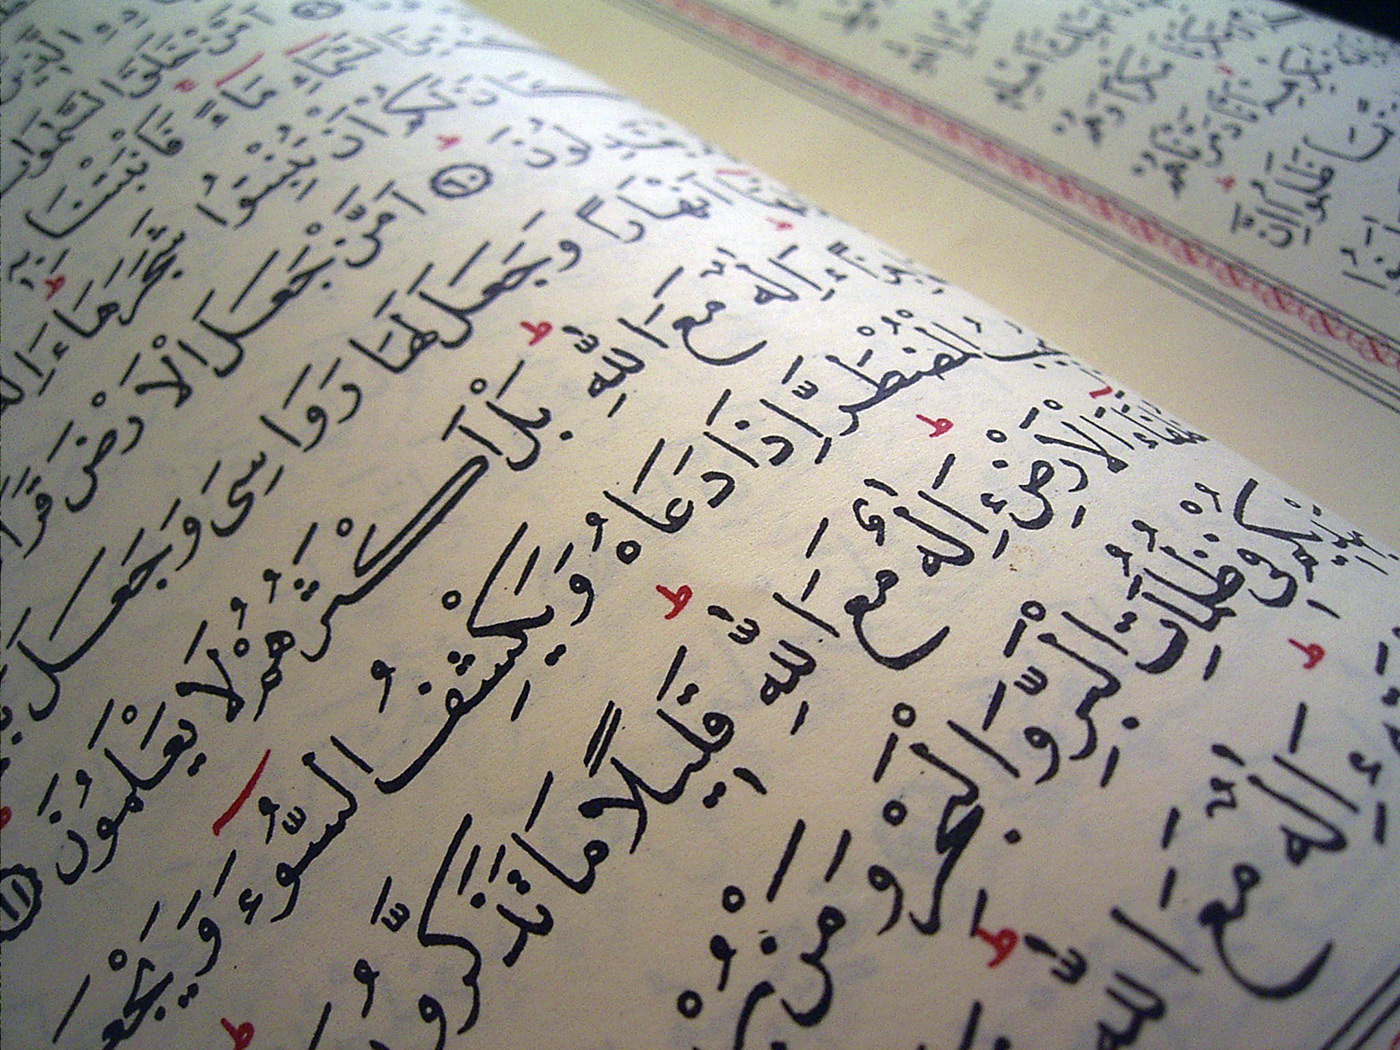 Quran text up close.